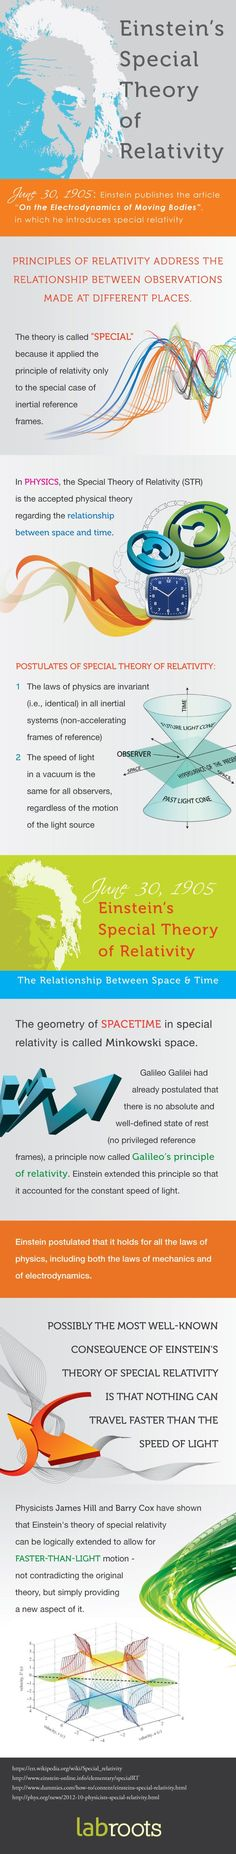 Einstein's Special Theory of Relativity Explained | LabRoots | Infographics For the Scientific and Medical Community